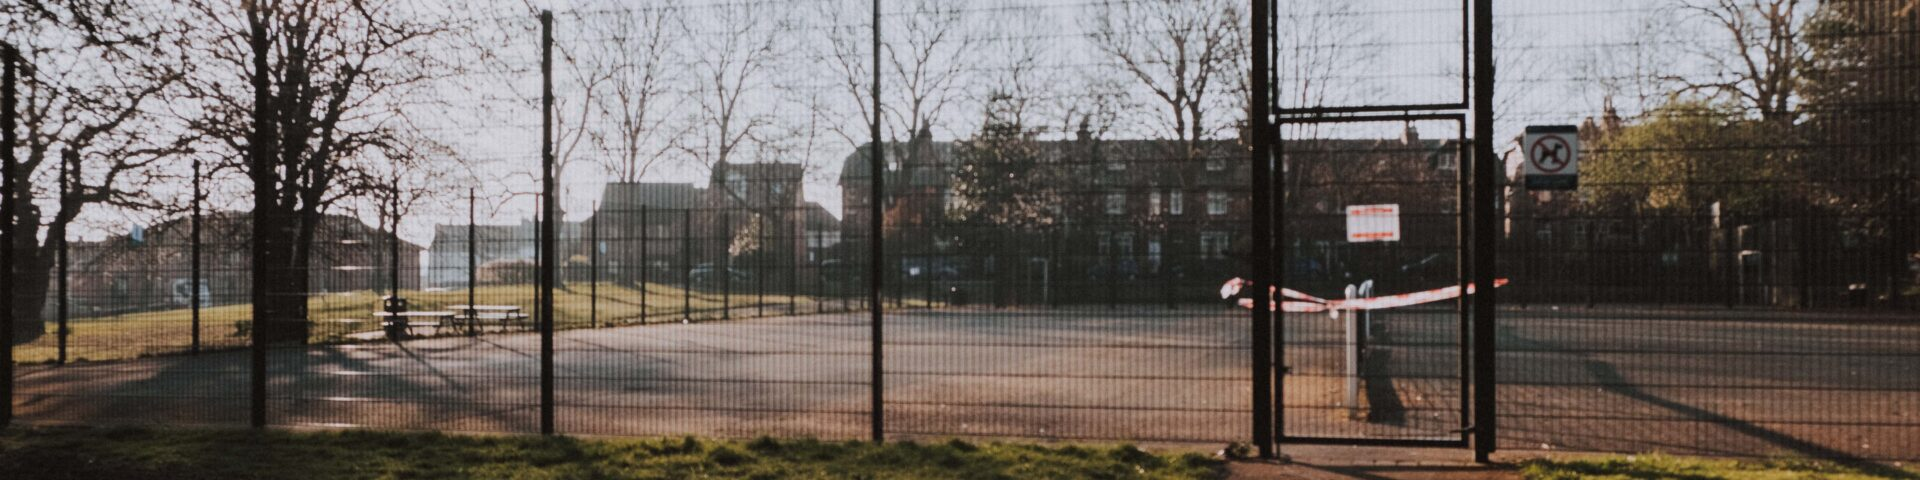 Closed outdoor football pitch